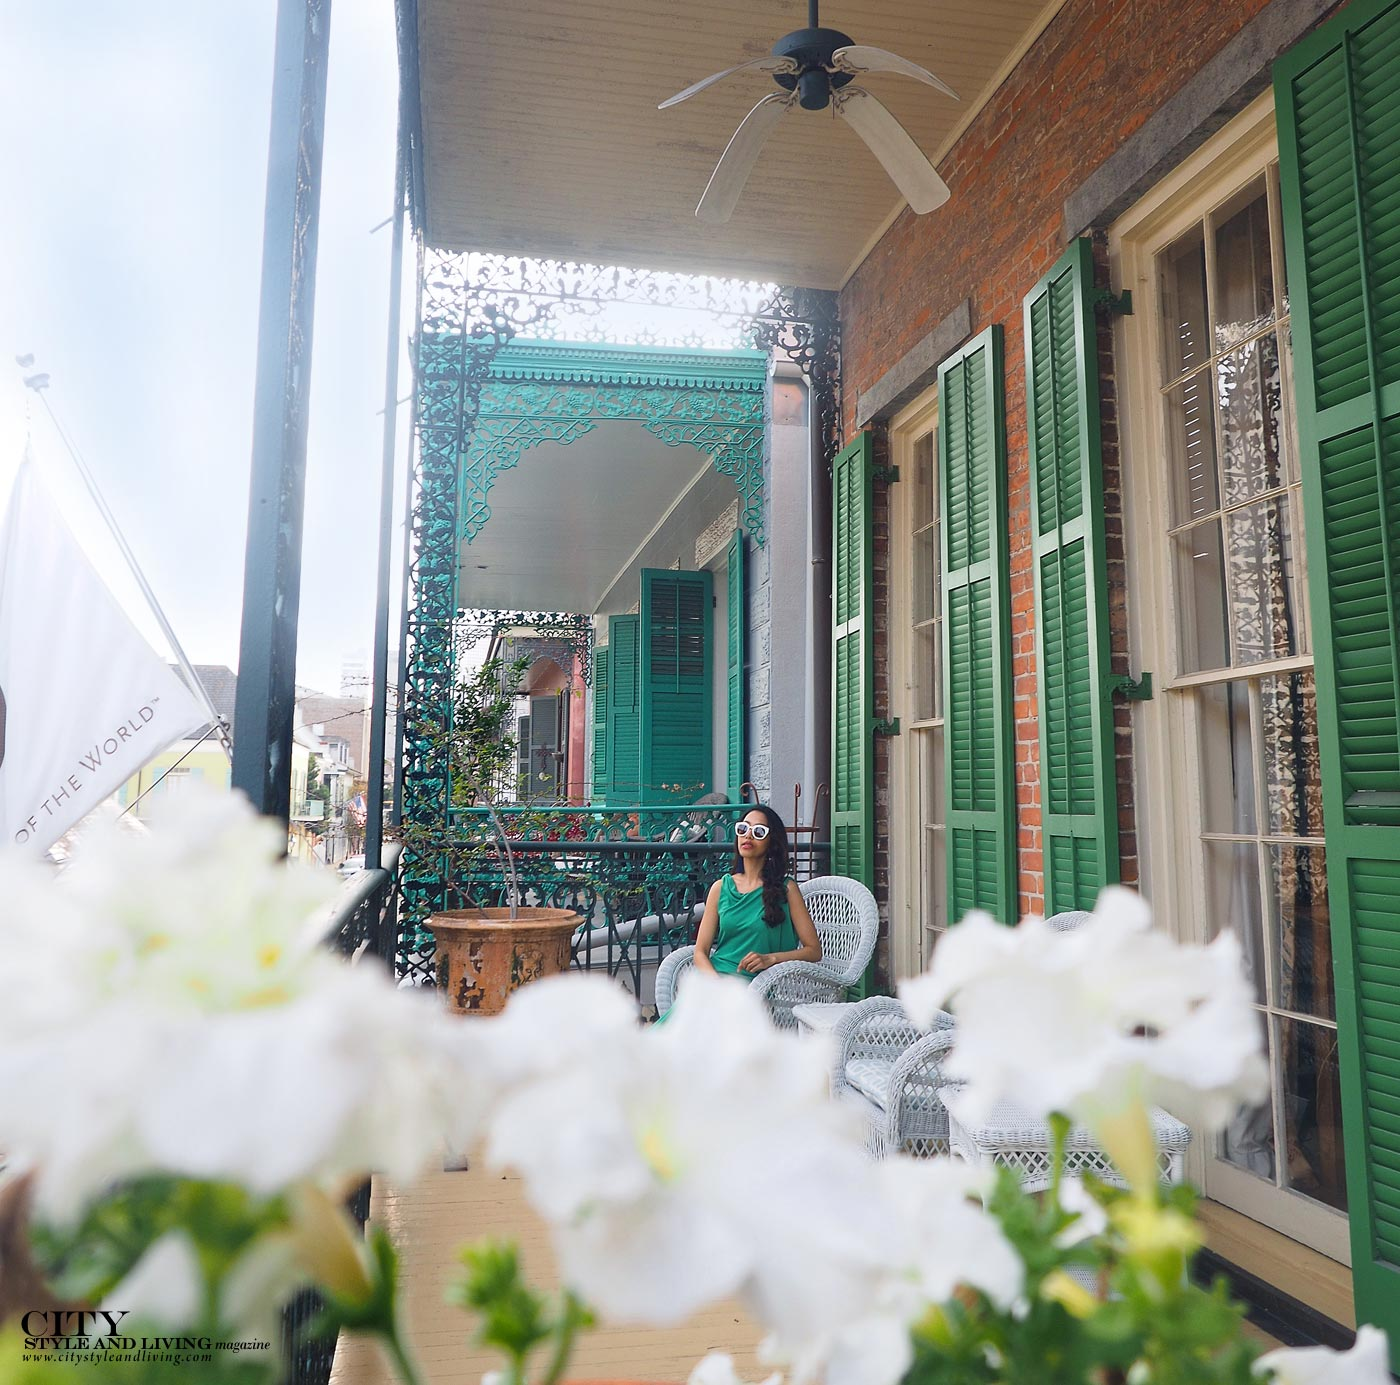 BalconCity style and living magazine The Editors Notebook style fashion blogger Shivana Maharaj French Quarter New Orleans Soniat House Balcony wearing BCBG Max Azria green maxi dress sitting with flowersyFlowerswatermark